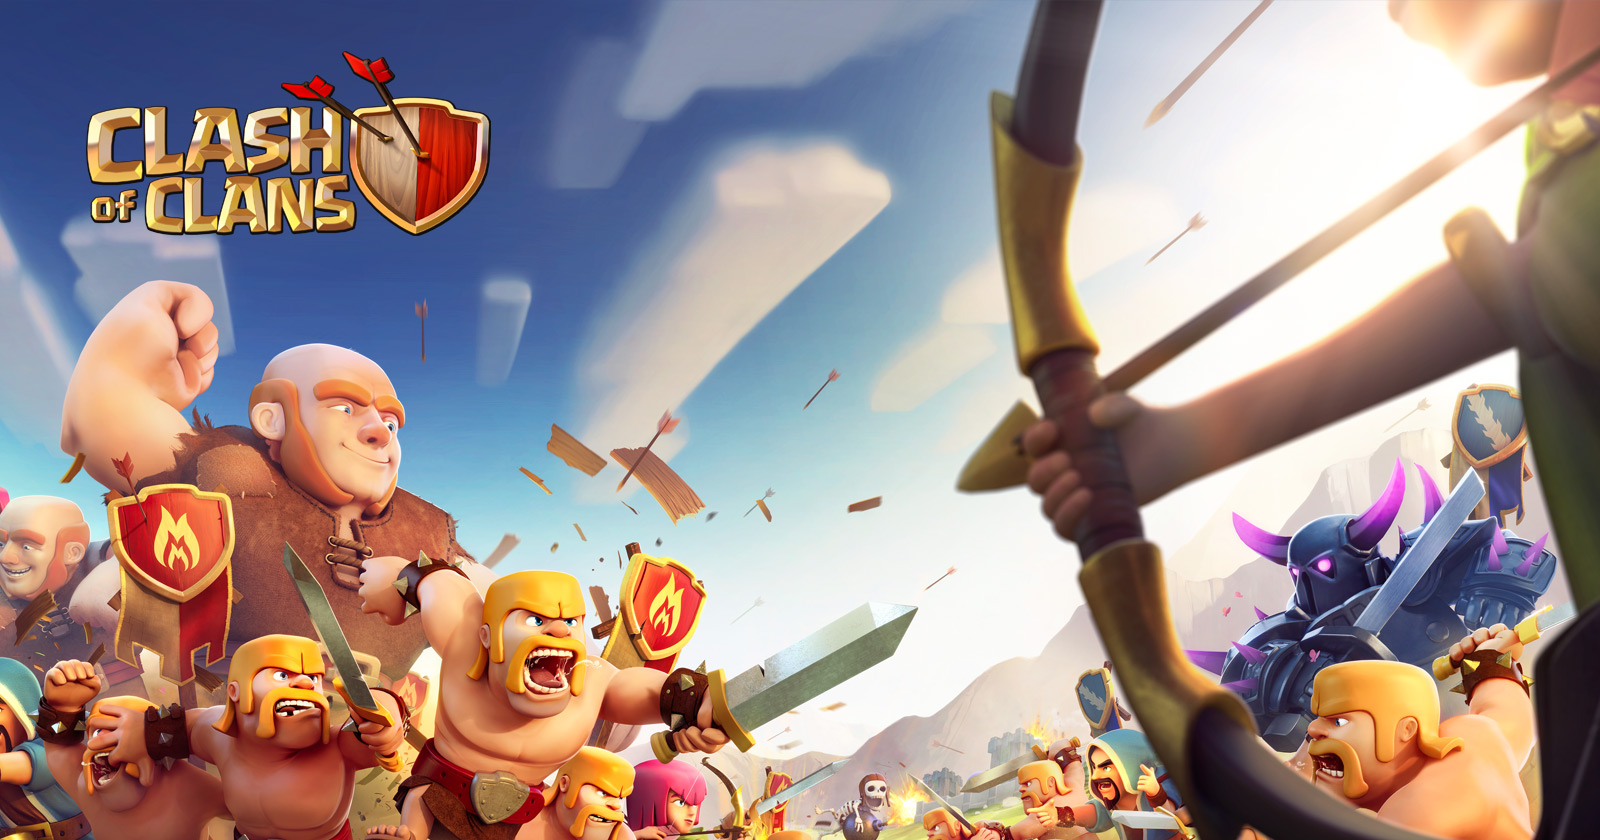 Download Clash of Clans 8.709.24 APK